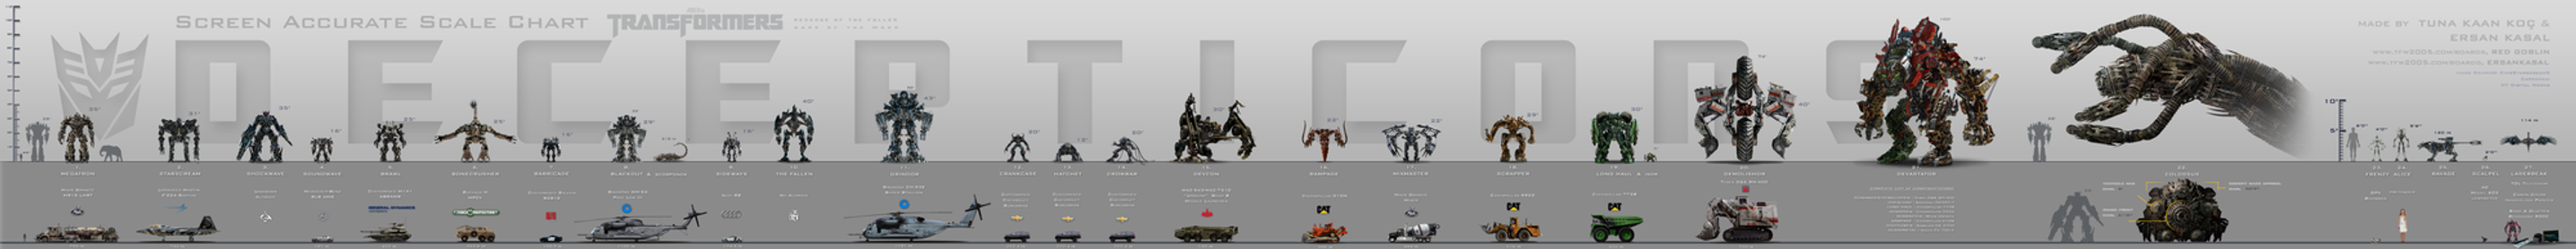 The Decepticons Lineup by DarienSpeyer